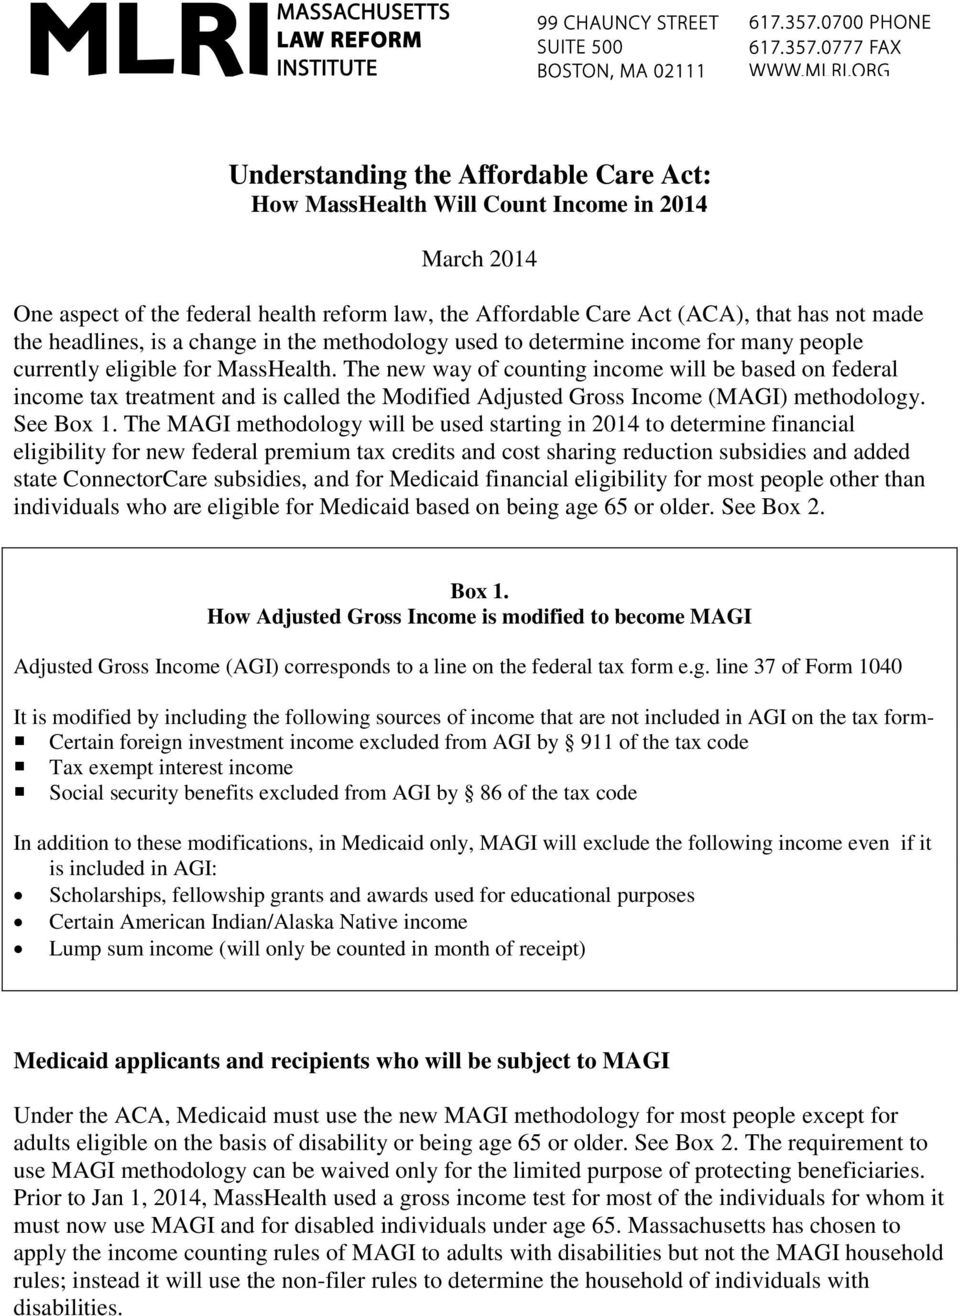 Understanding the Affordable Care Act: How MassHealth Will